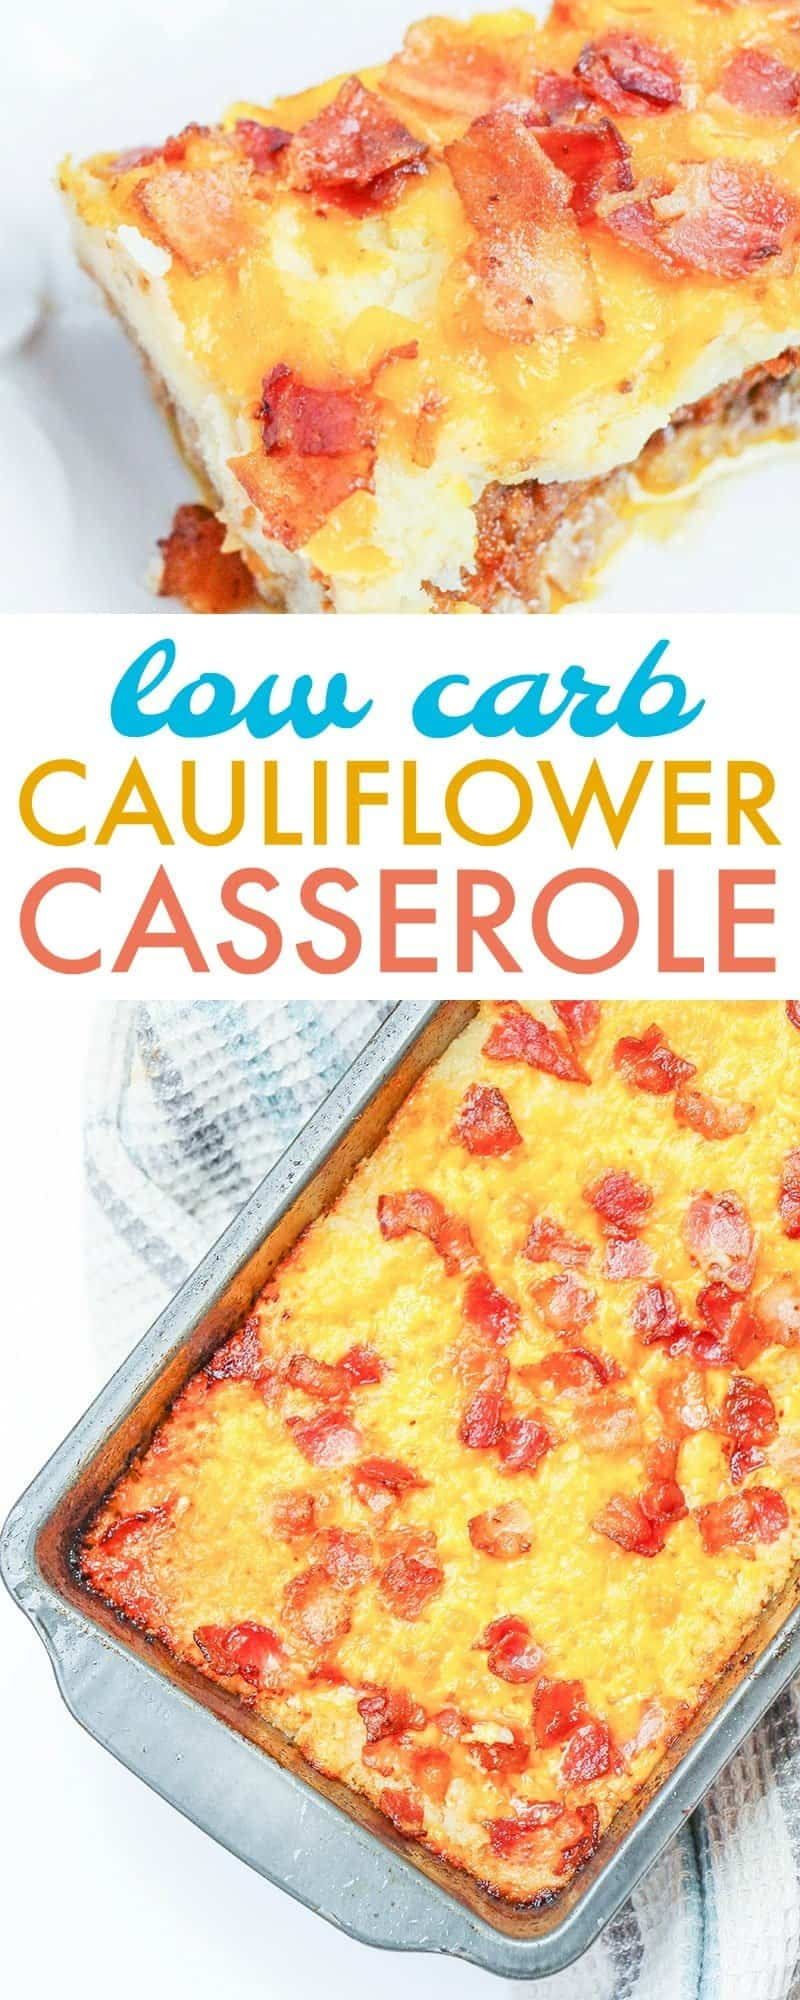 Two pictures of loaded cauliflower casserole with the words low carb cauliflower casserole between them.